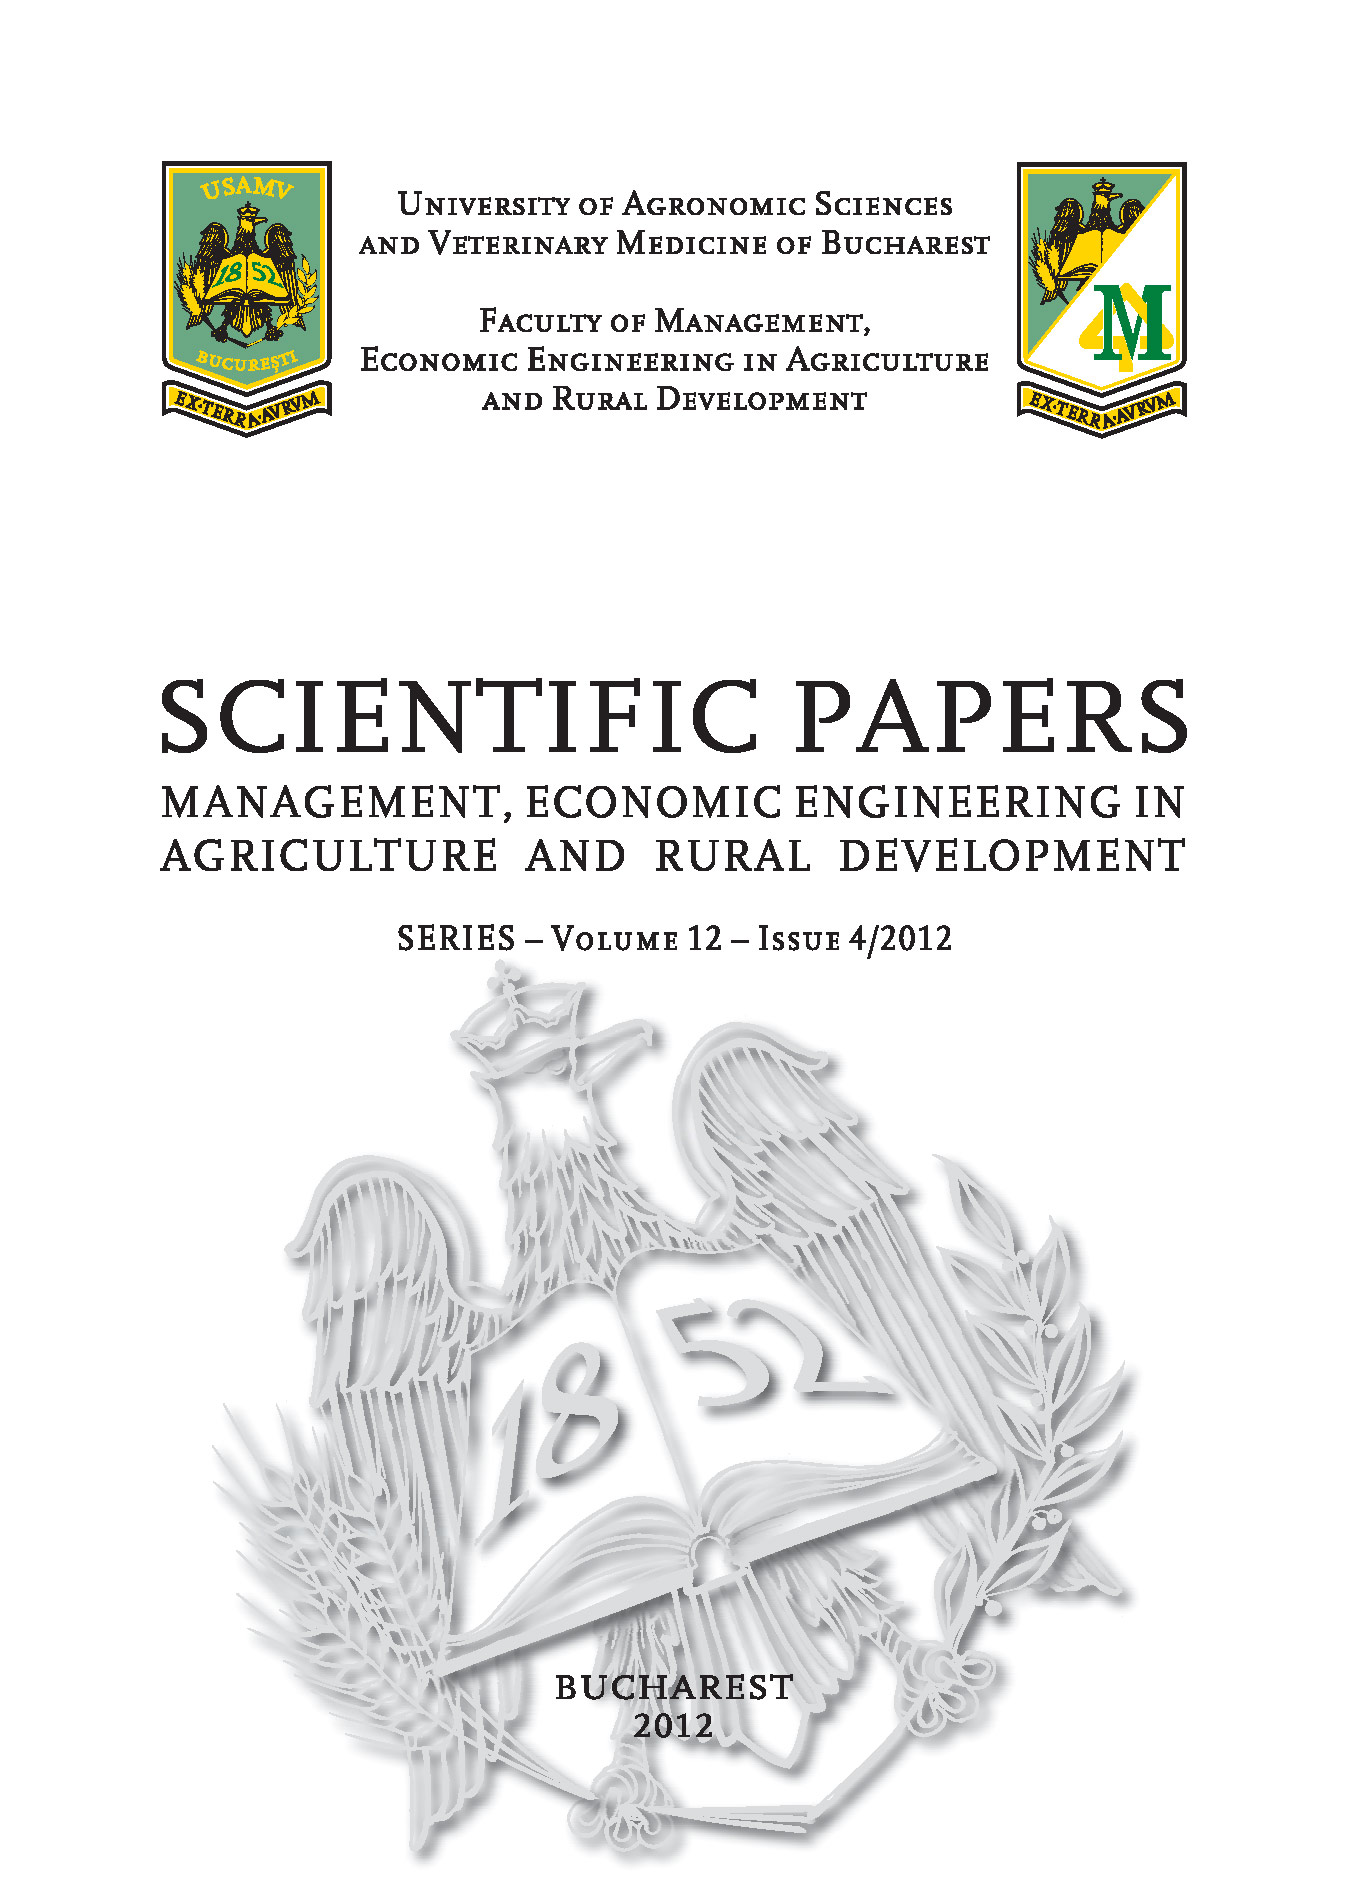 Scientific Papers Management Economic Engineering in Agriculture and Rural Development